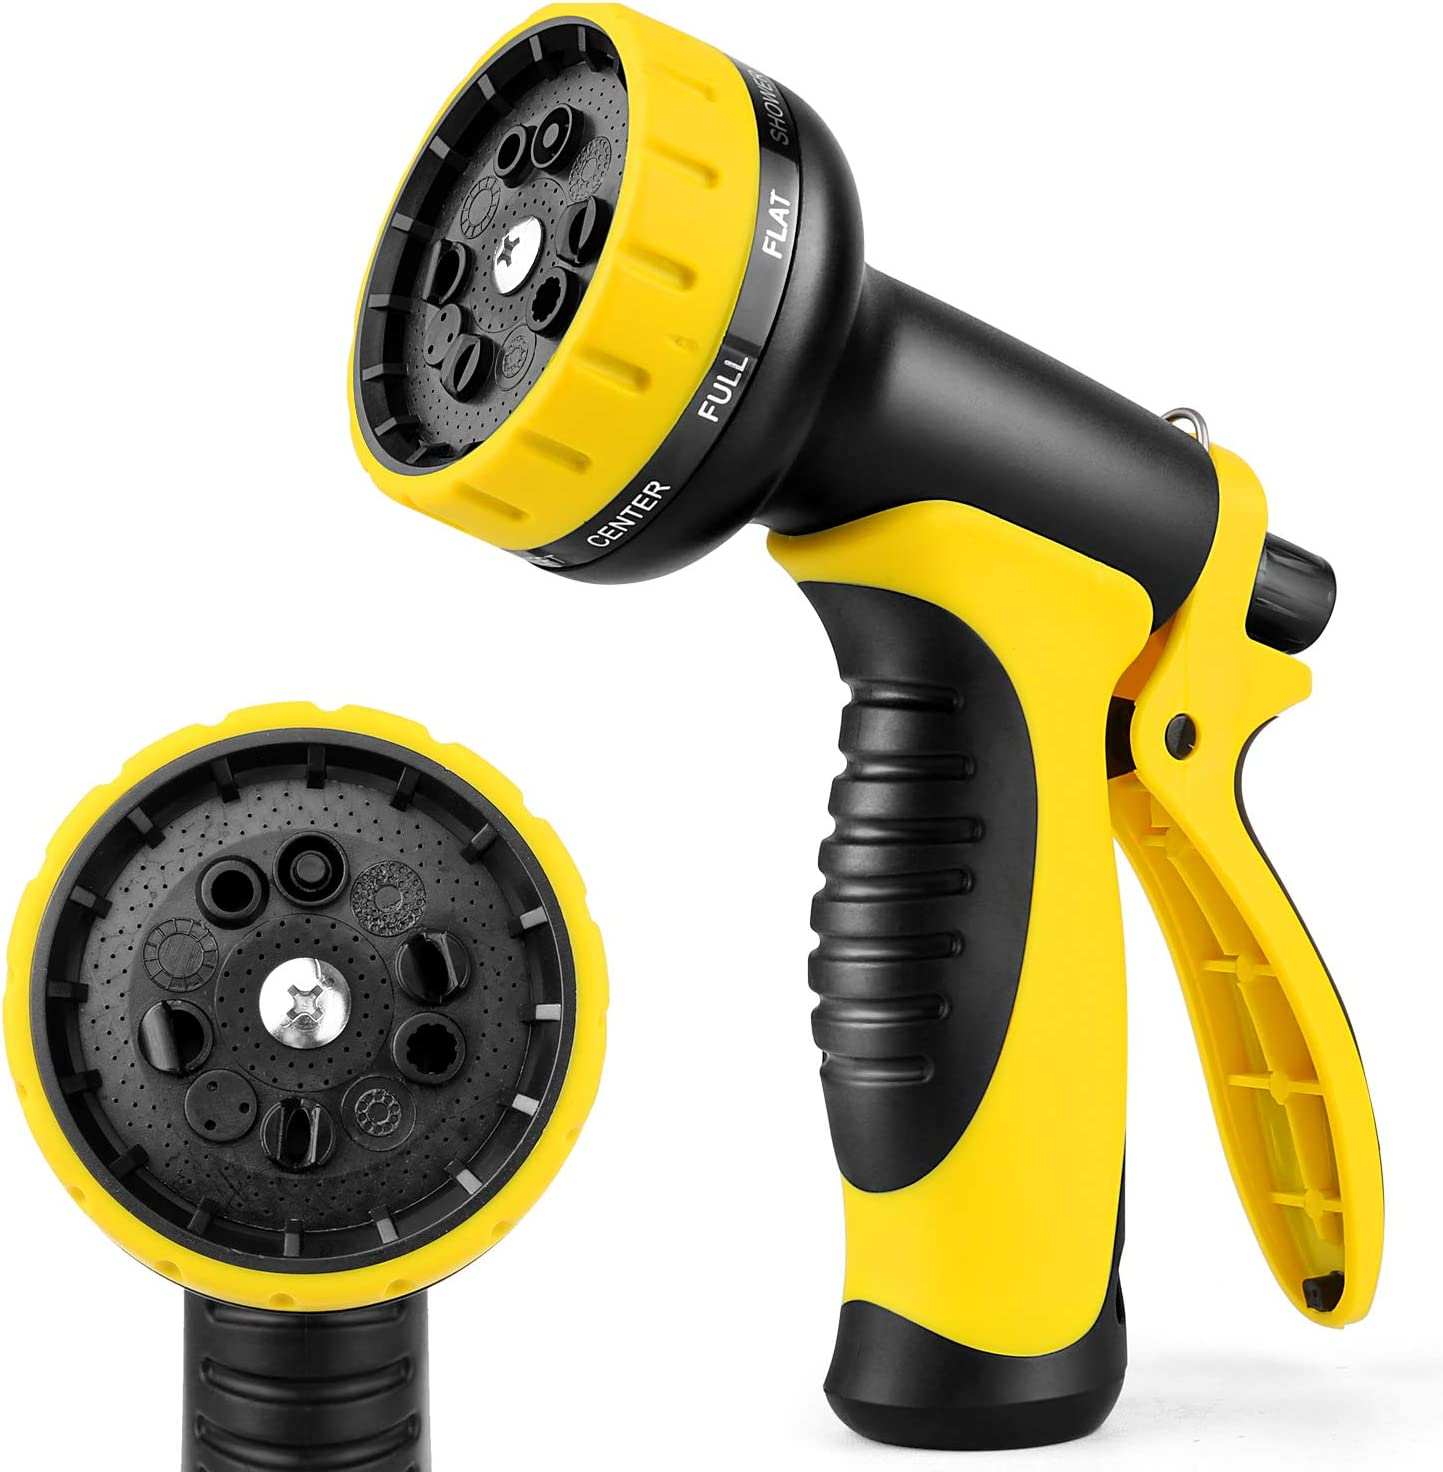 Garden hose nozzle,Multi-function nozzle, equipped with 10 adjustable watering modes, suitable for lawn and garden watering, pet bathing, cleaning and car washing...(Yellow)